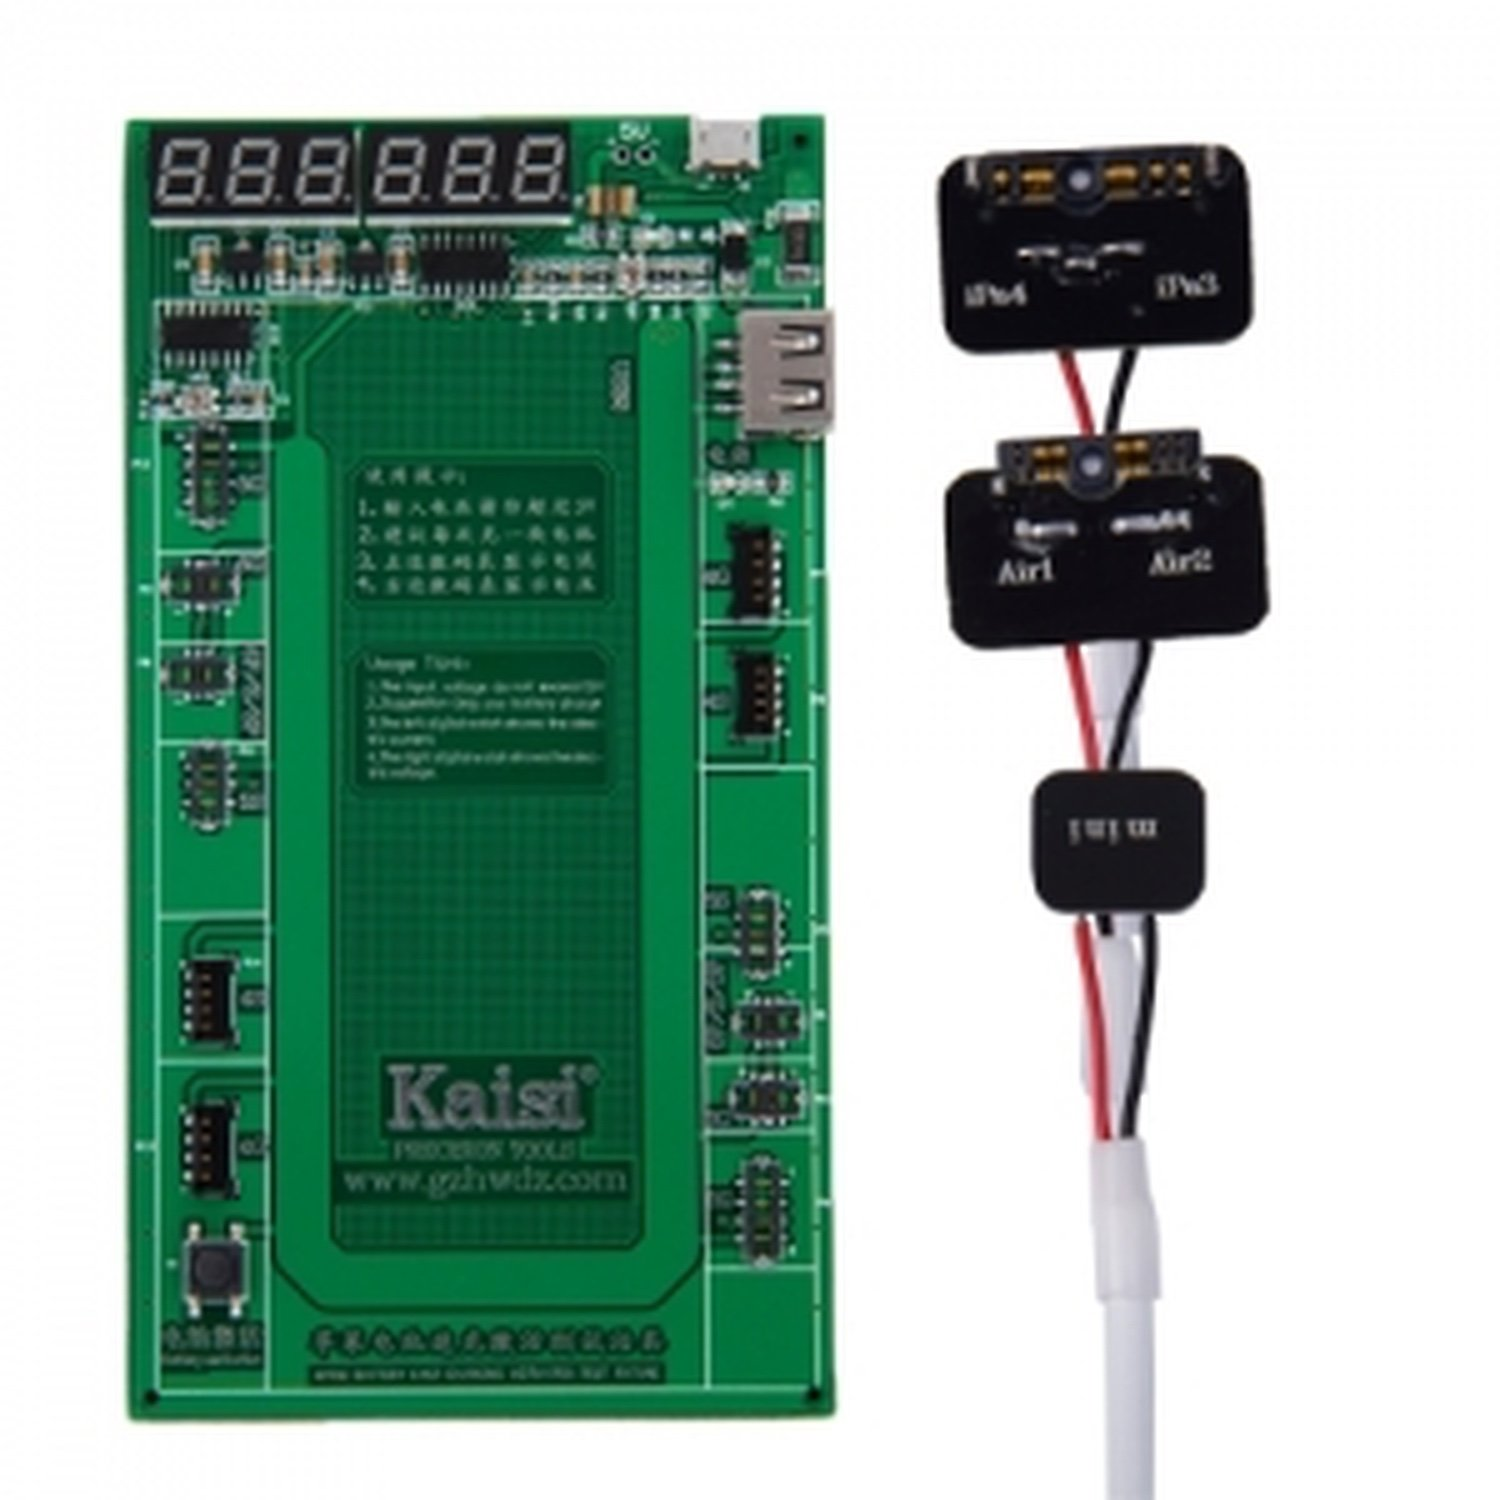 Kaisi K9202 iPhone Battery Charger 4G/4S/5/5c/5S/6/6 + and Ipad 2/3/4/5 (air) /mini1/mini2